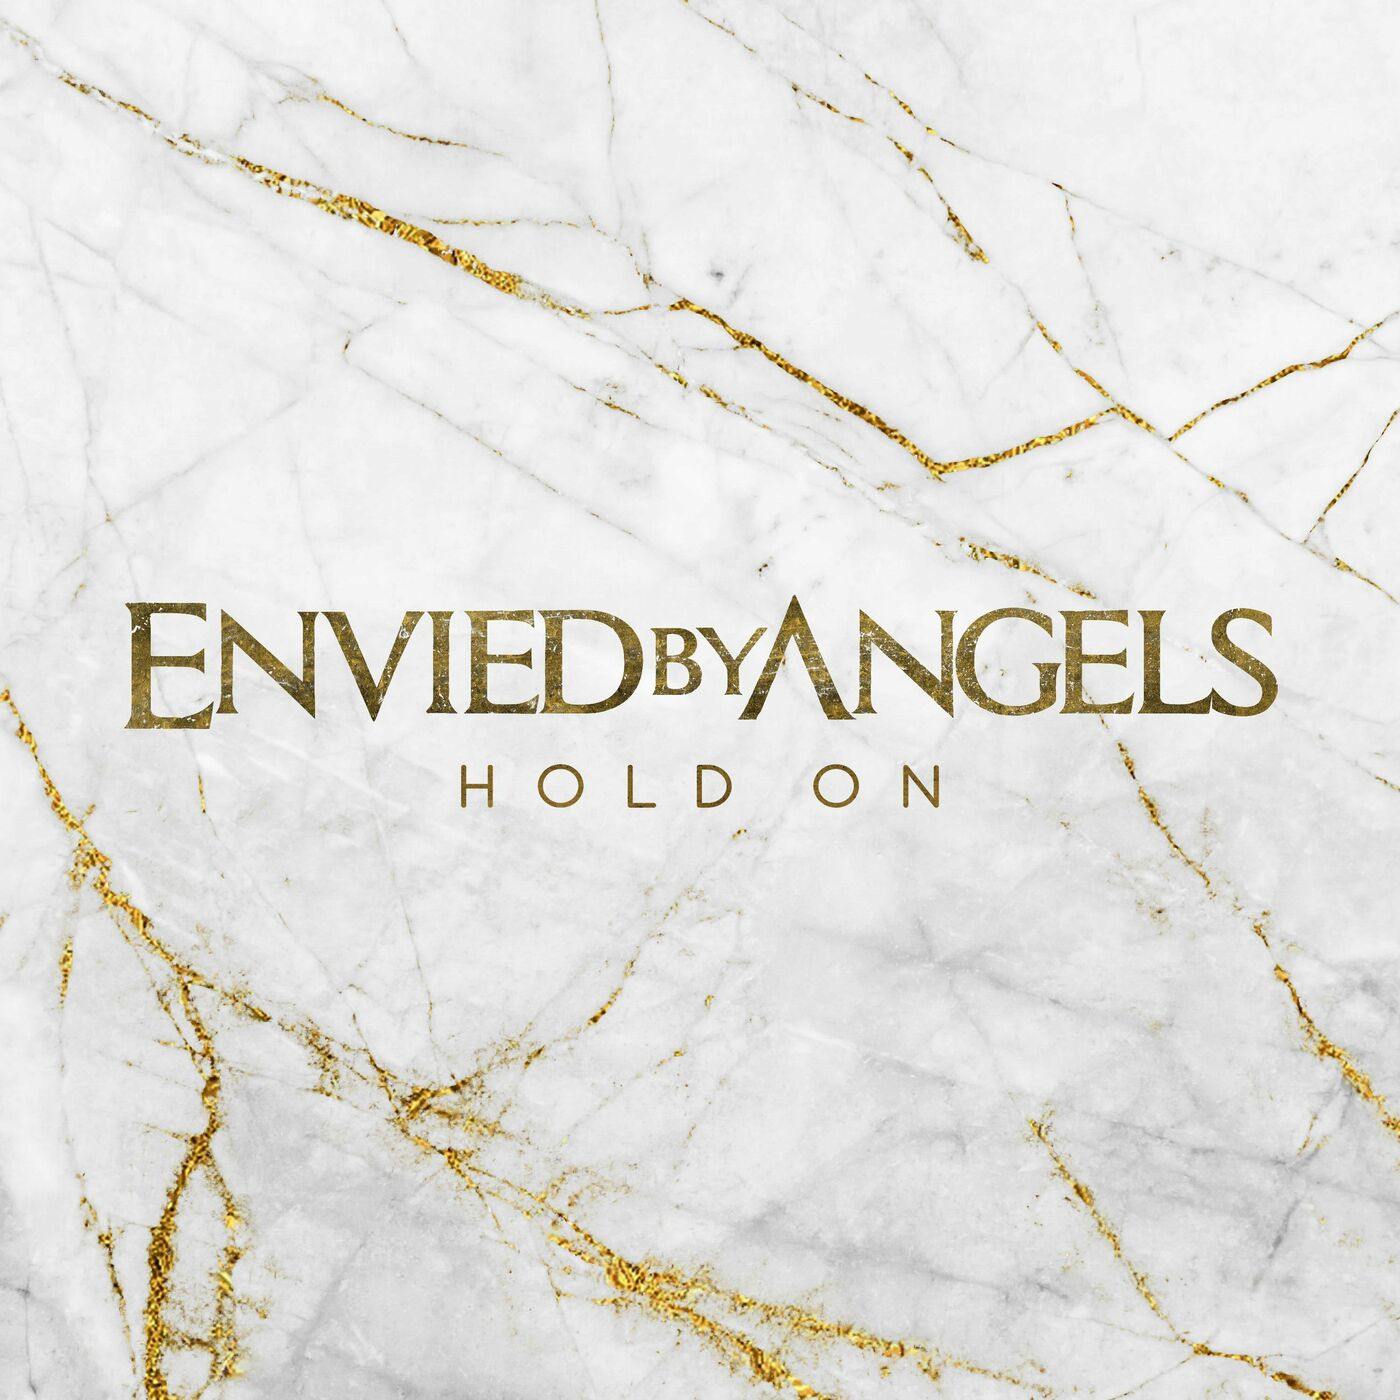 Envied by Angels - Hold On [single] (2021)